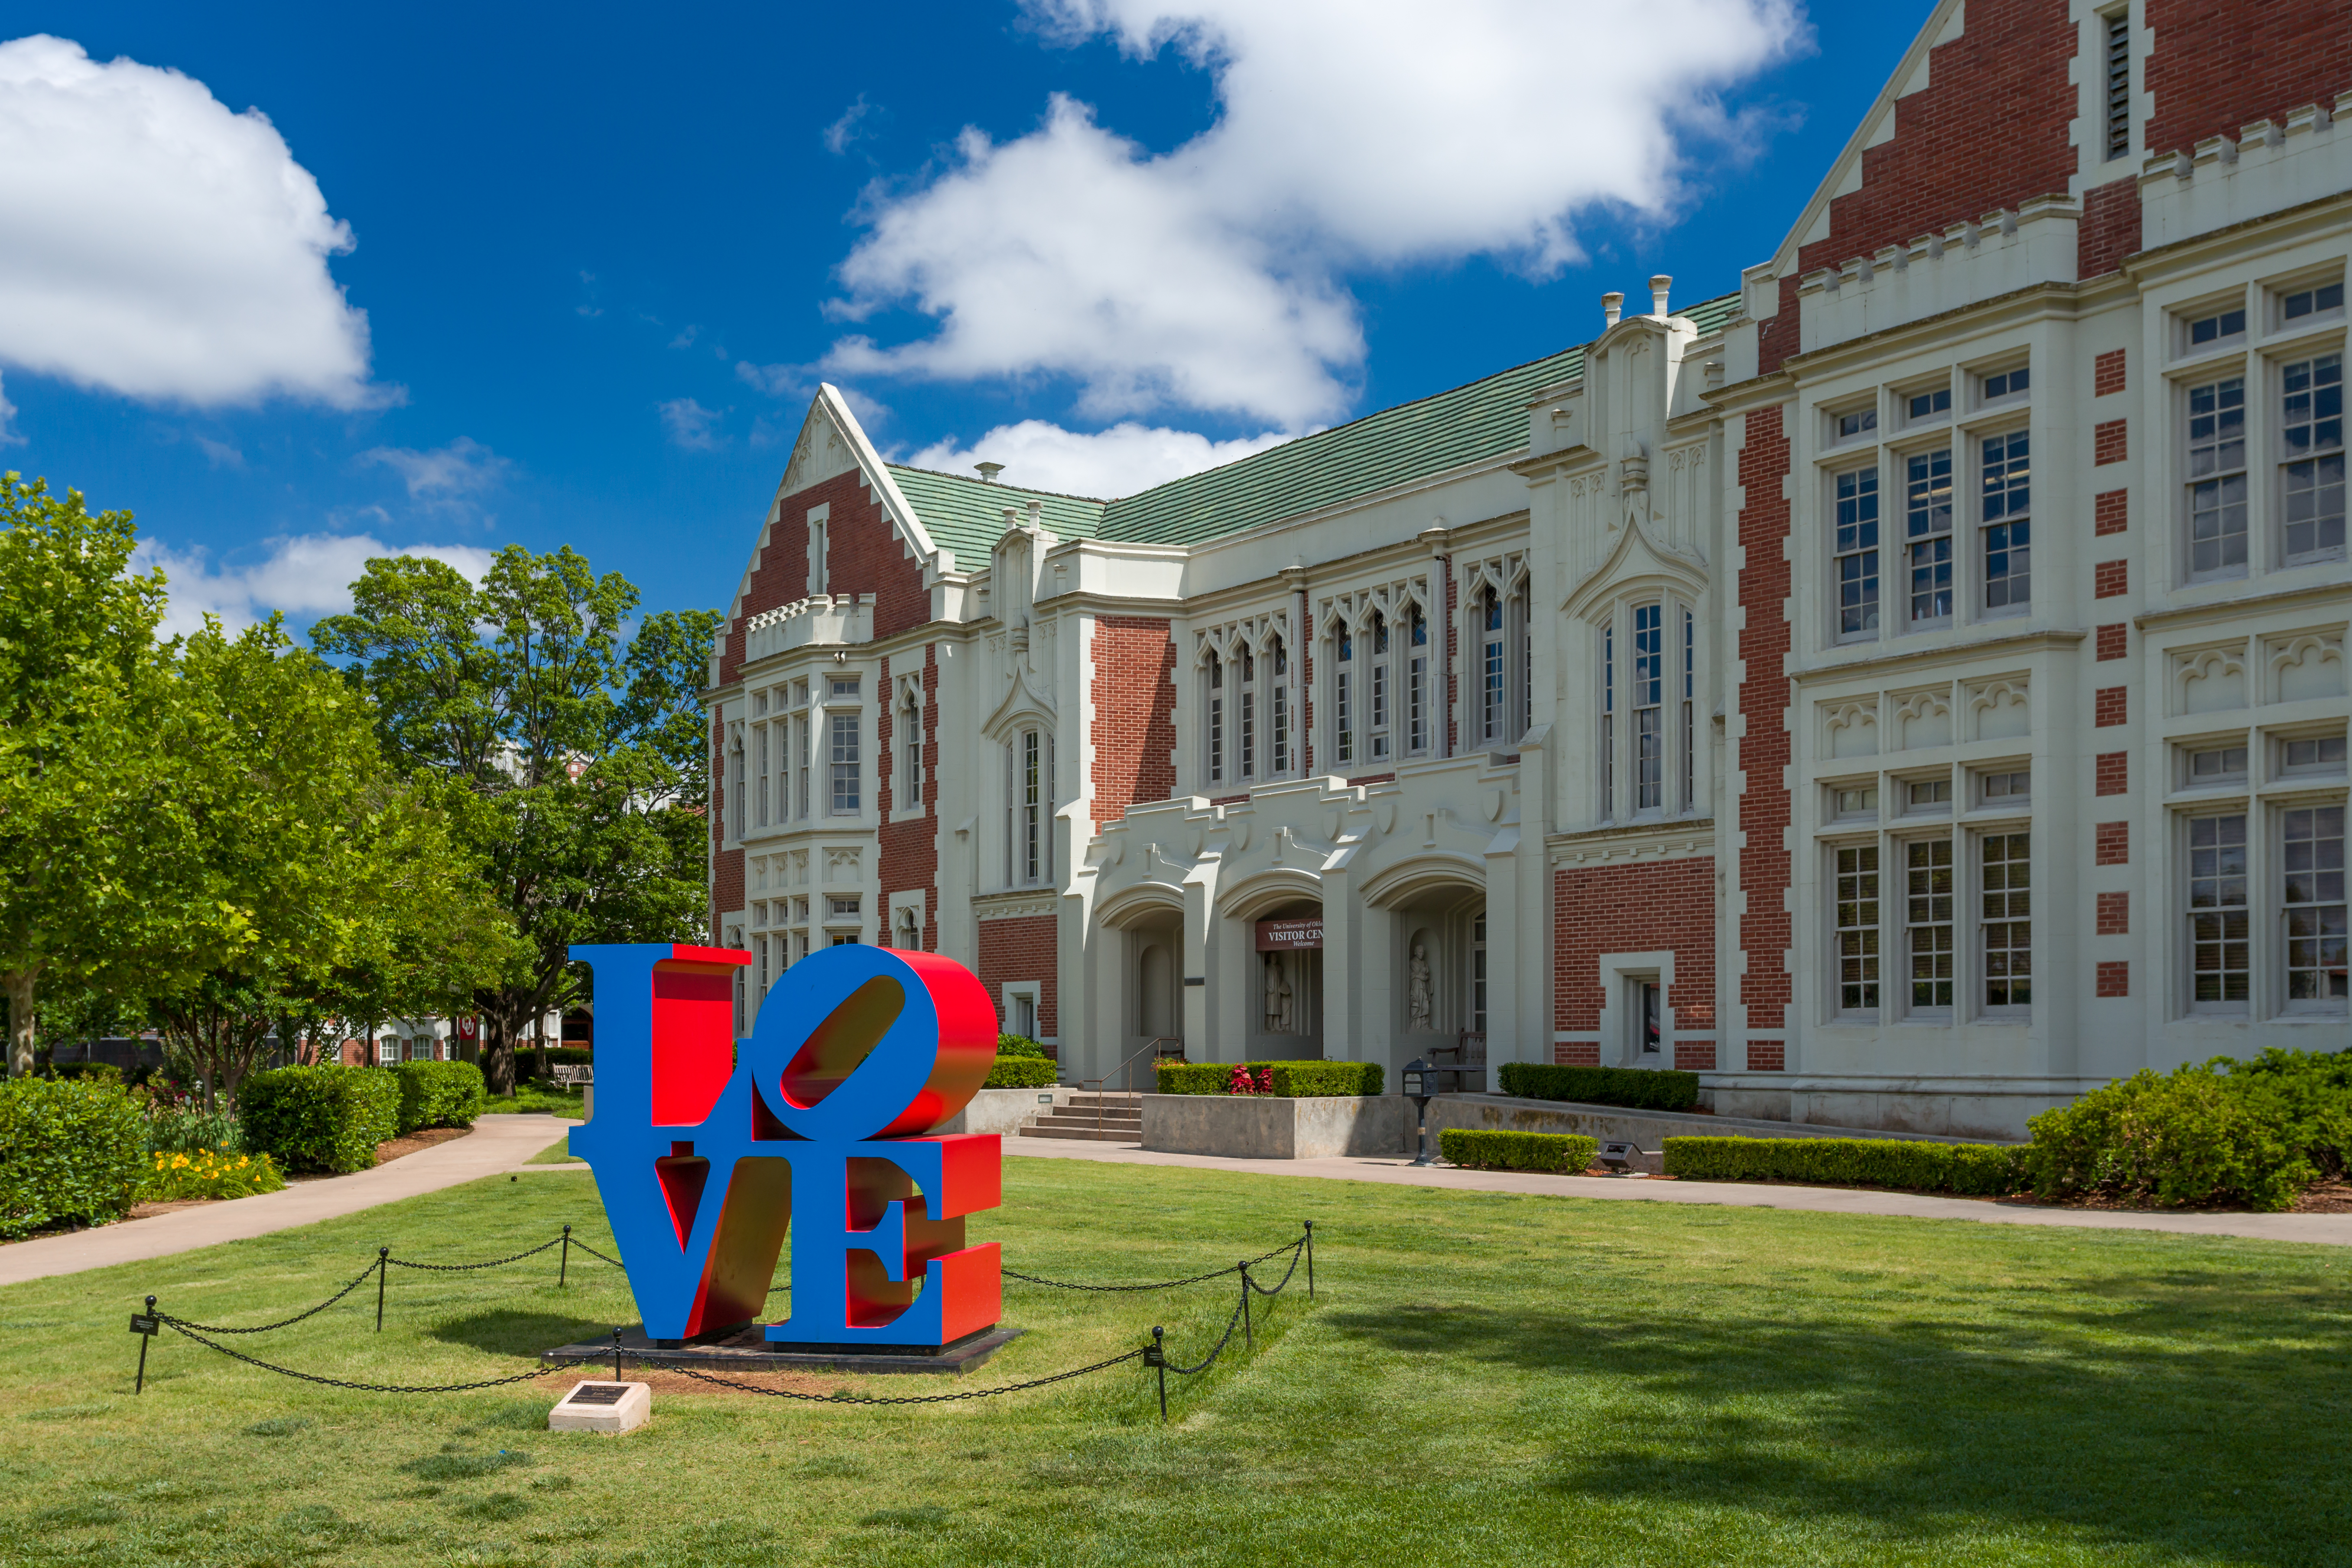 Norman, United States - May 20, 2016: Love Sculpture and Visitor Center on the campus of the University of Oklahoma.